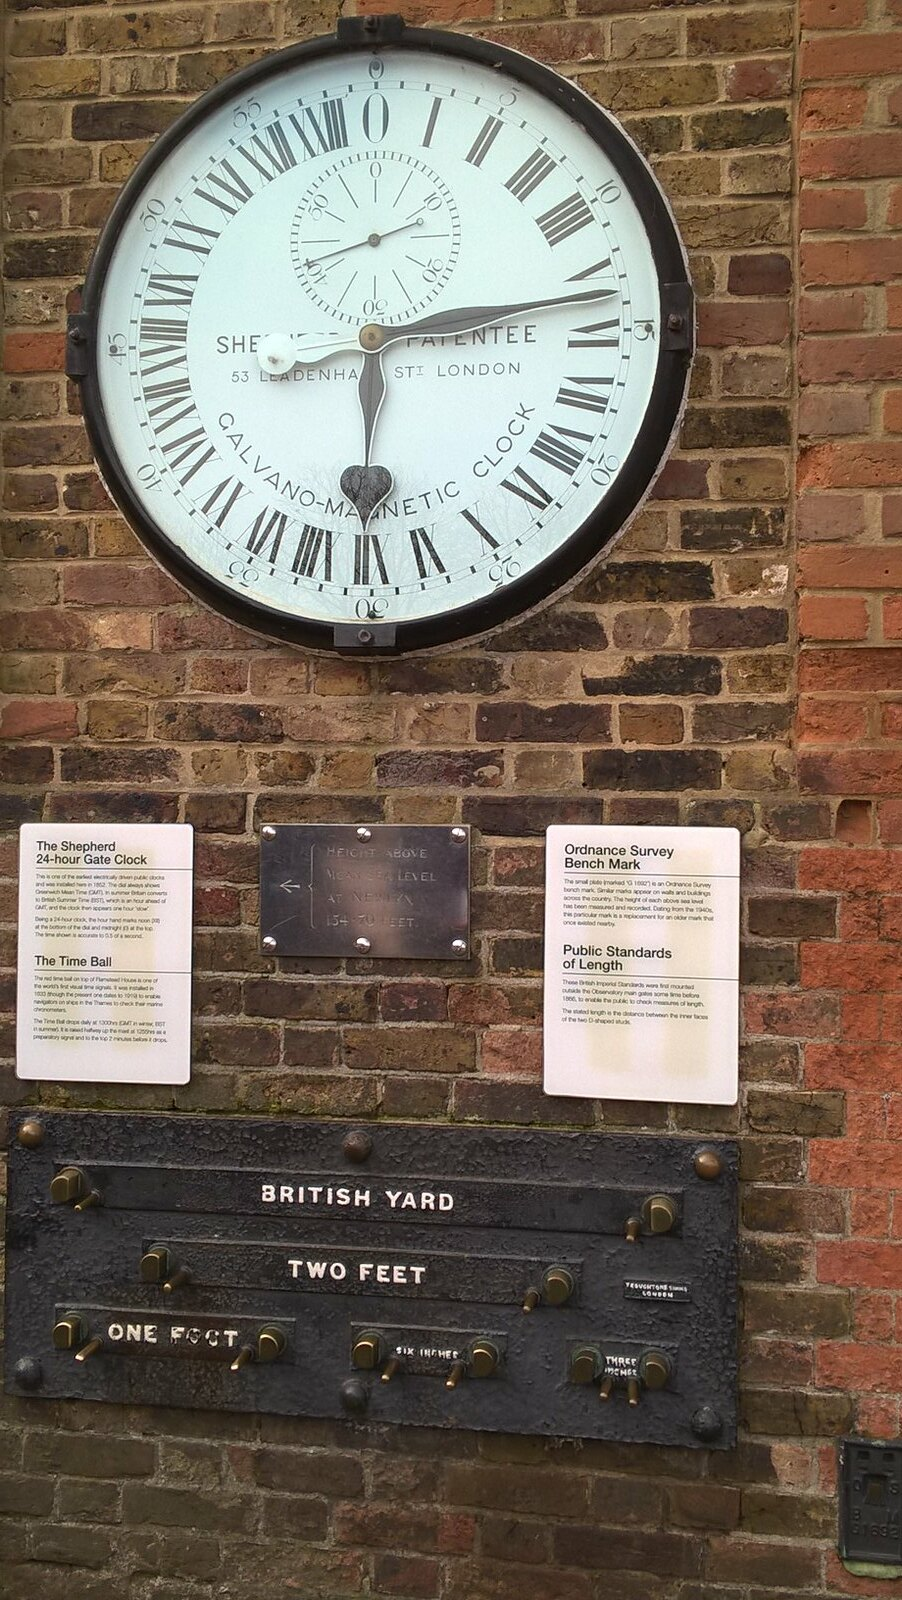 24 Hour Clock Royal Observatory, Greenwich